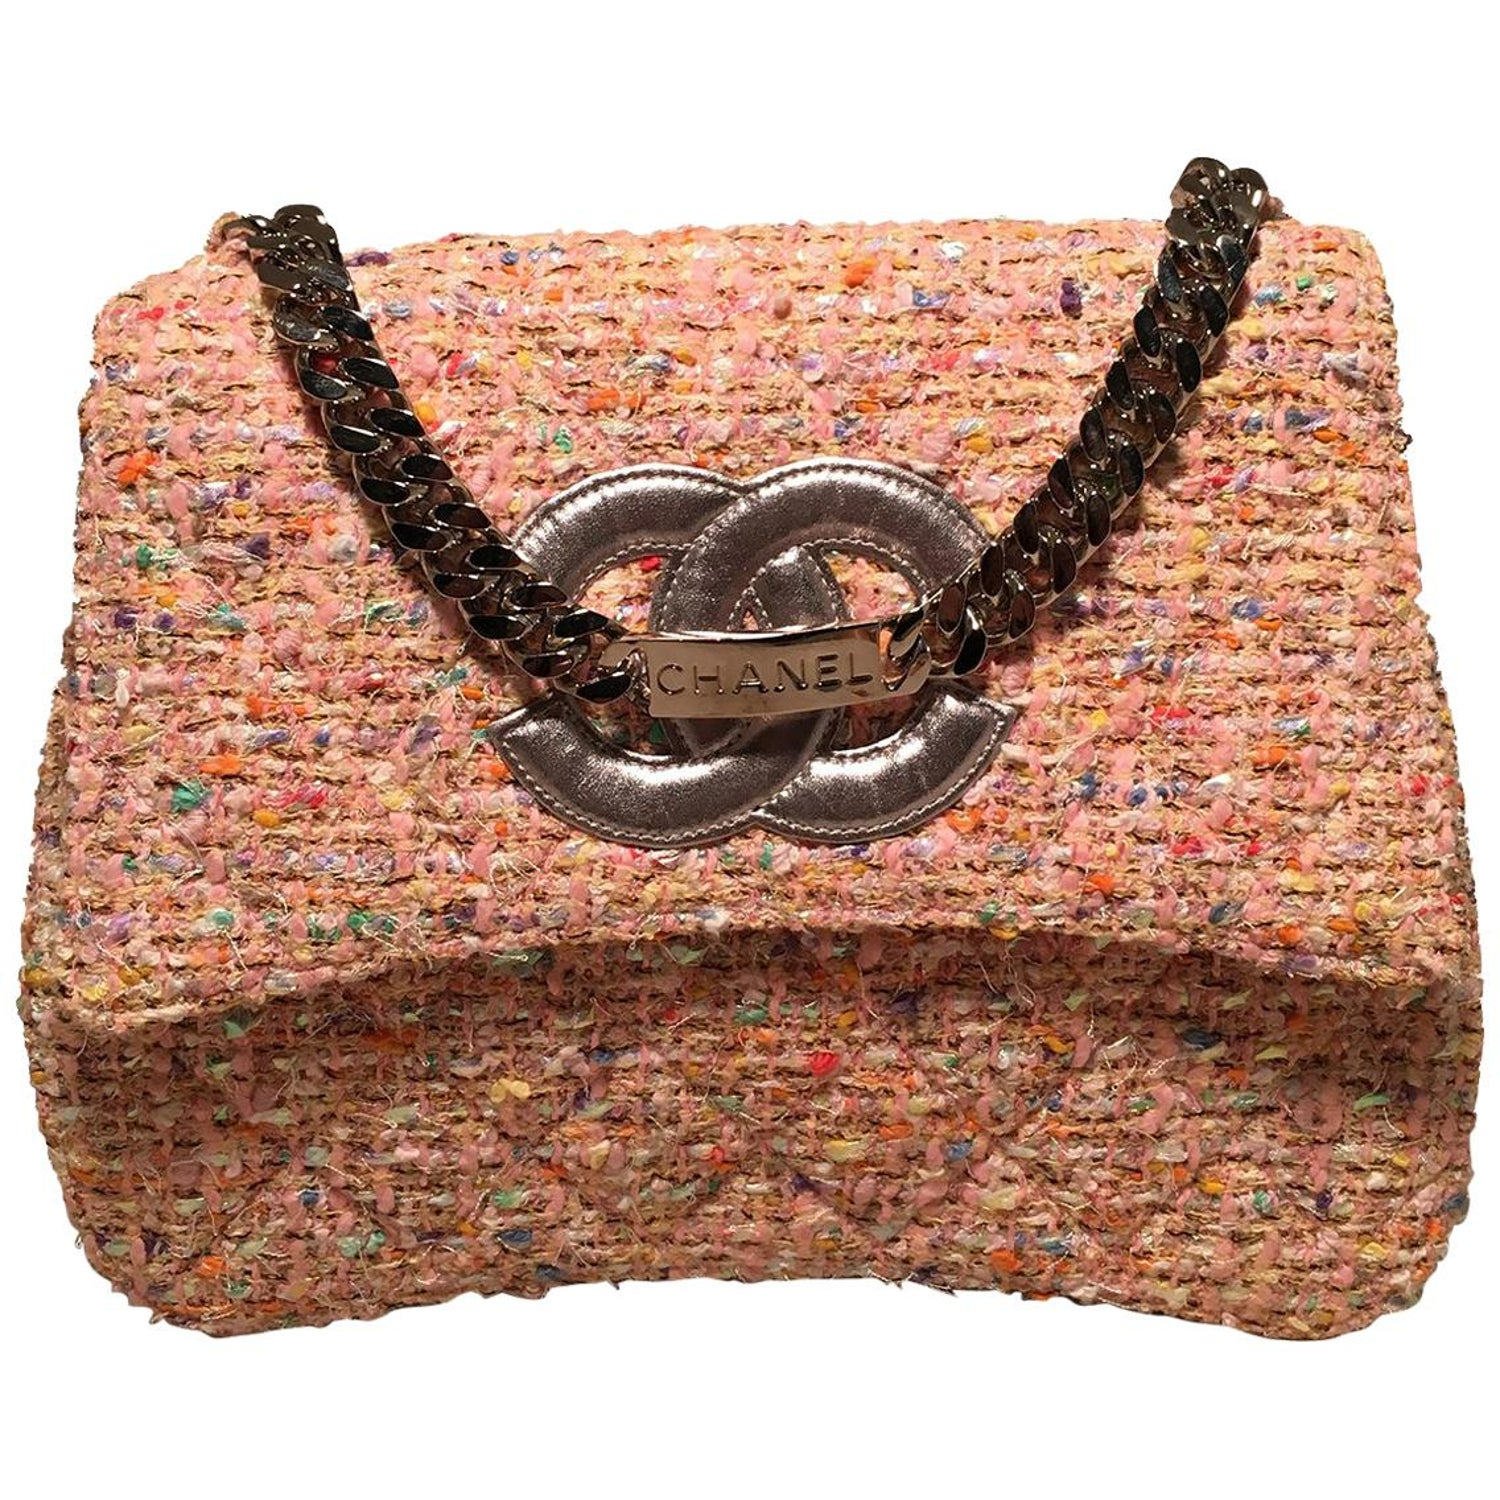 fd1b4a46cdc2 Chanel Vintage Pink Peach Woven Boucle Tweed Classic Flap Handbag For Sale  at 1stdibs